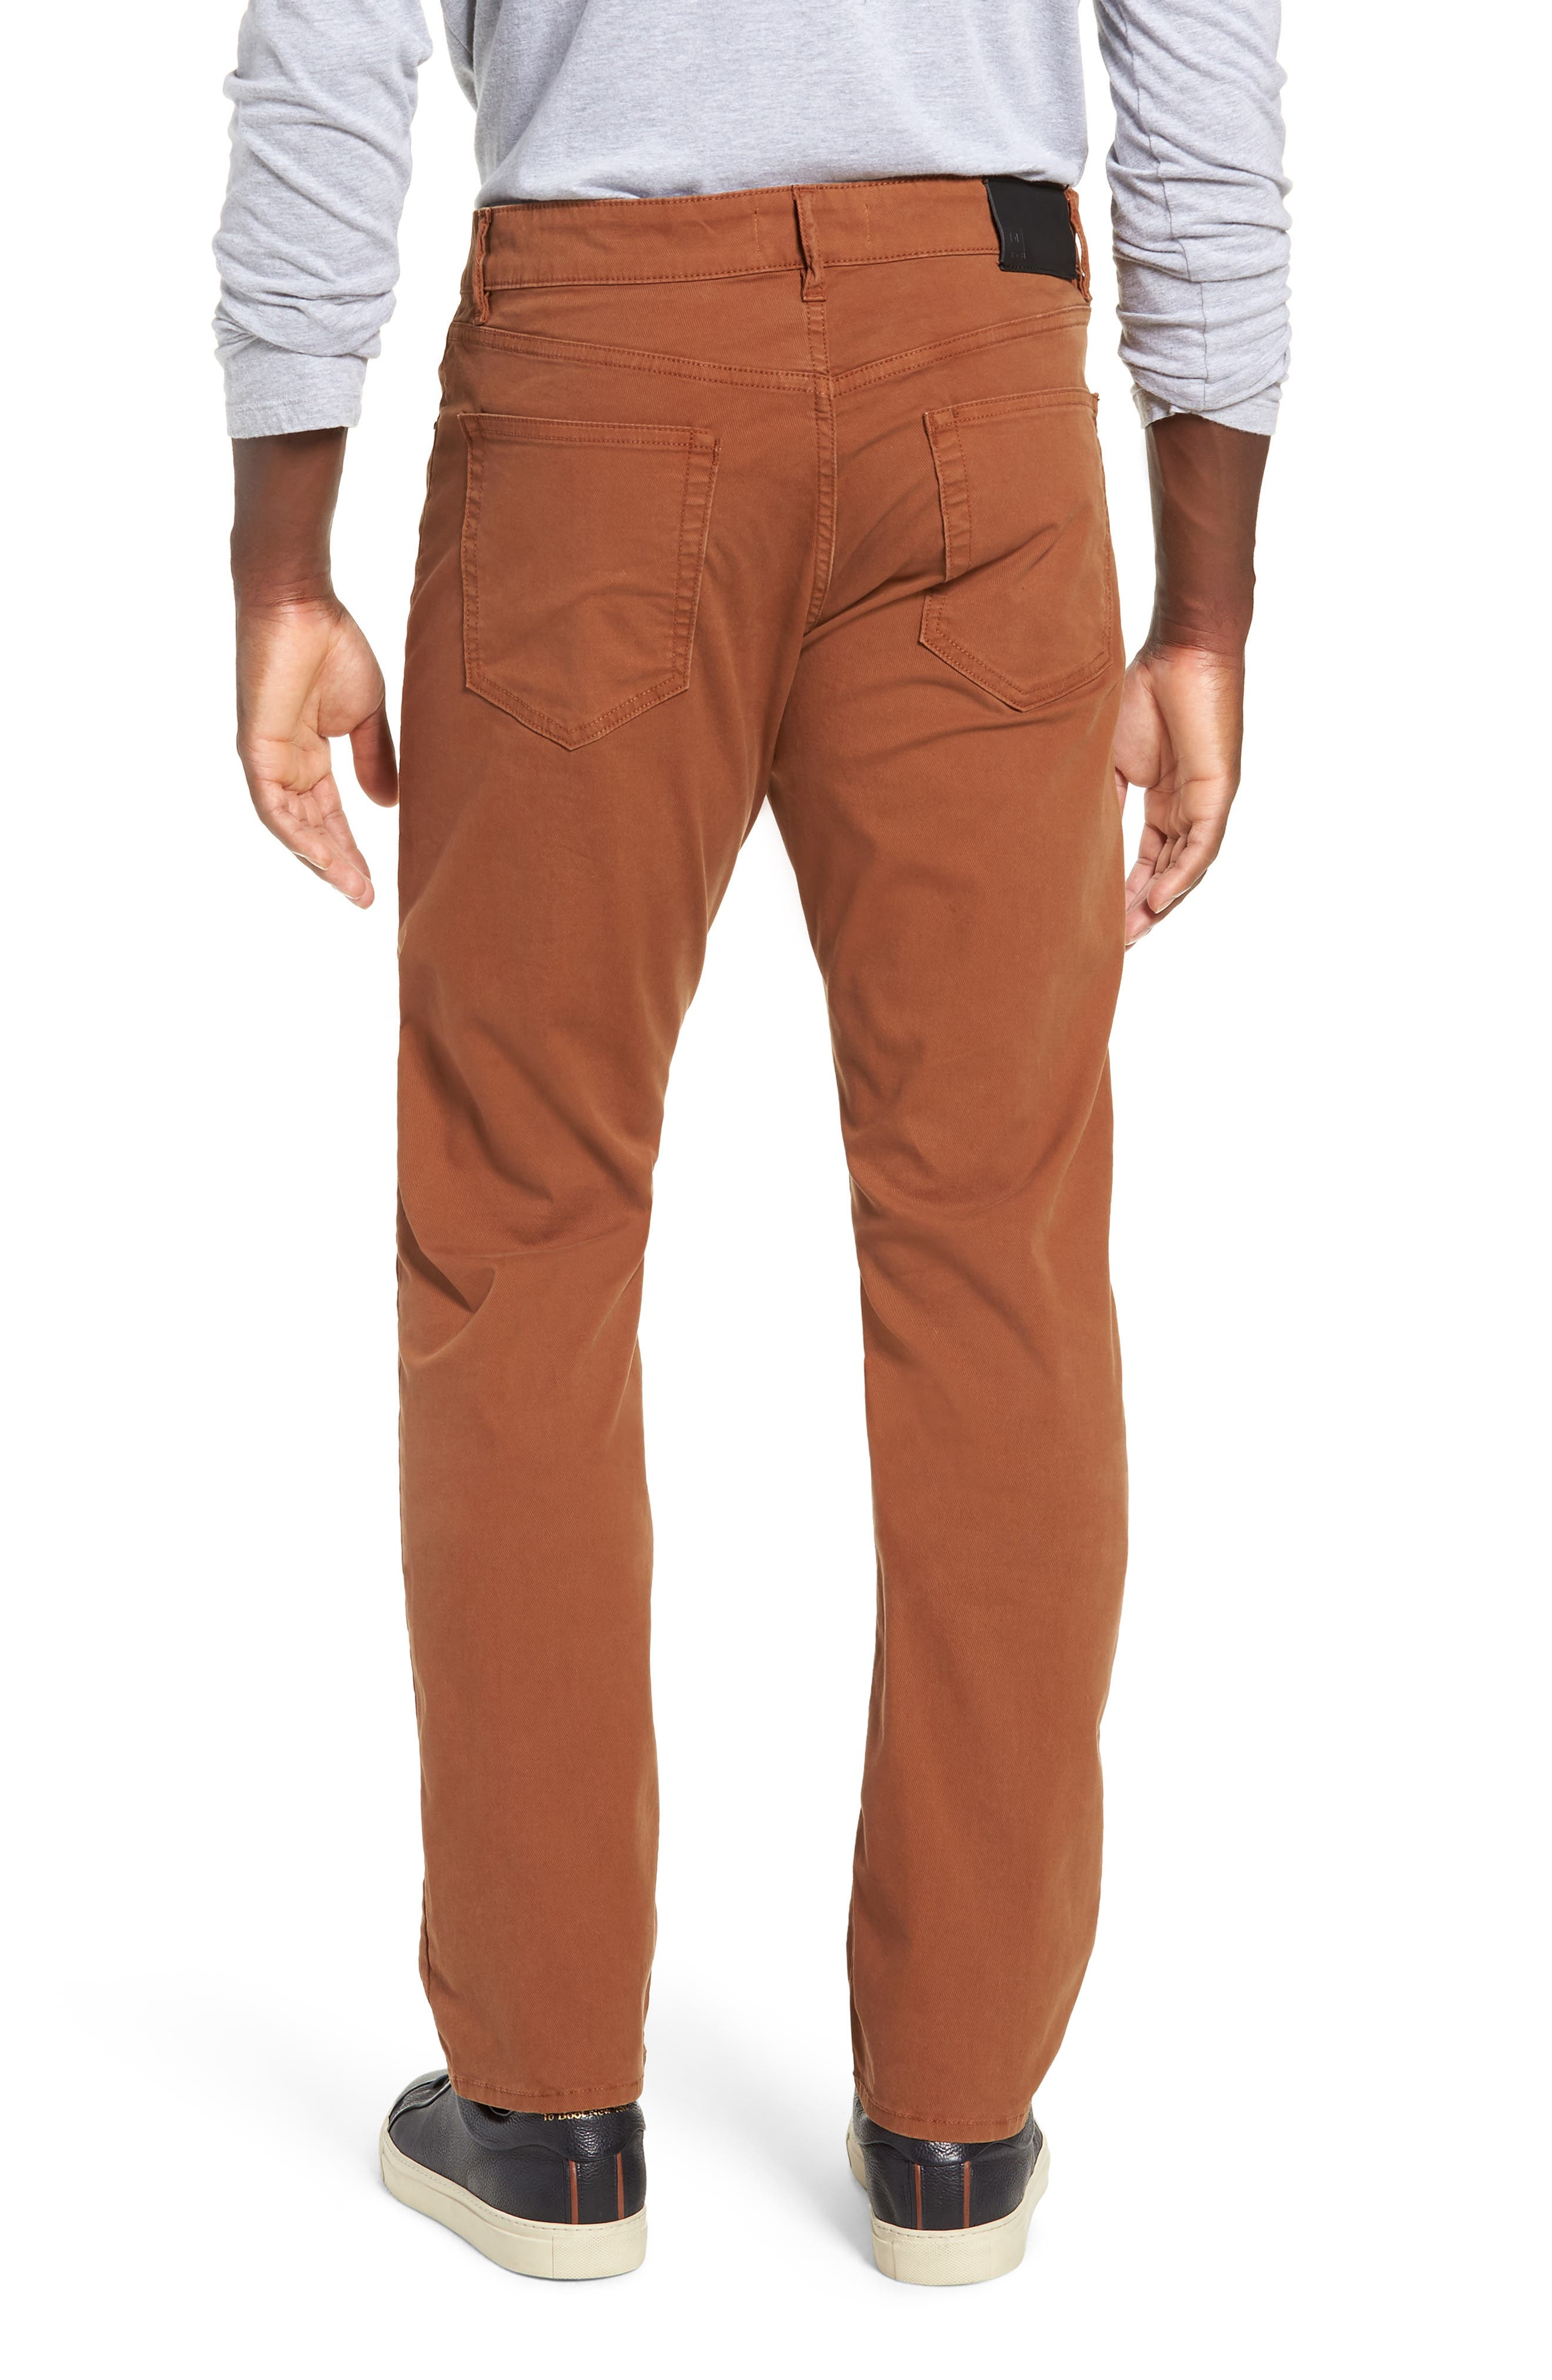 Russell Slim Straight Leg Jeans,                             Alternate thumbnail 2, color,                             TERRACOTTA